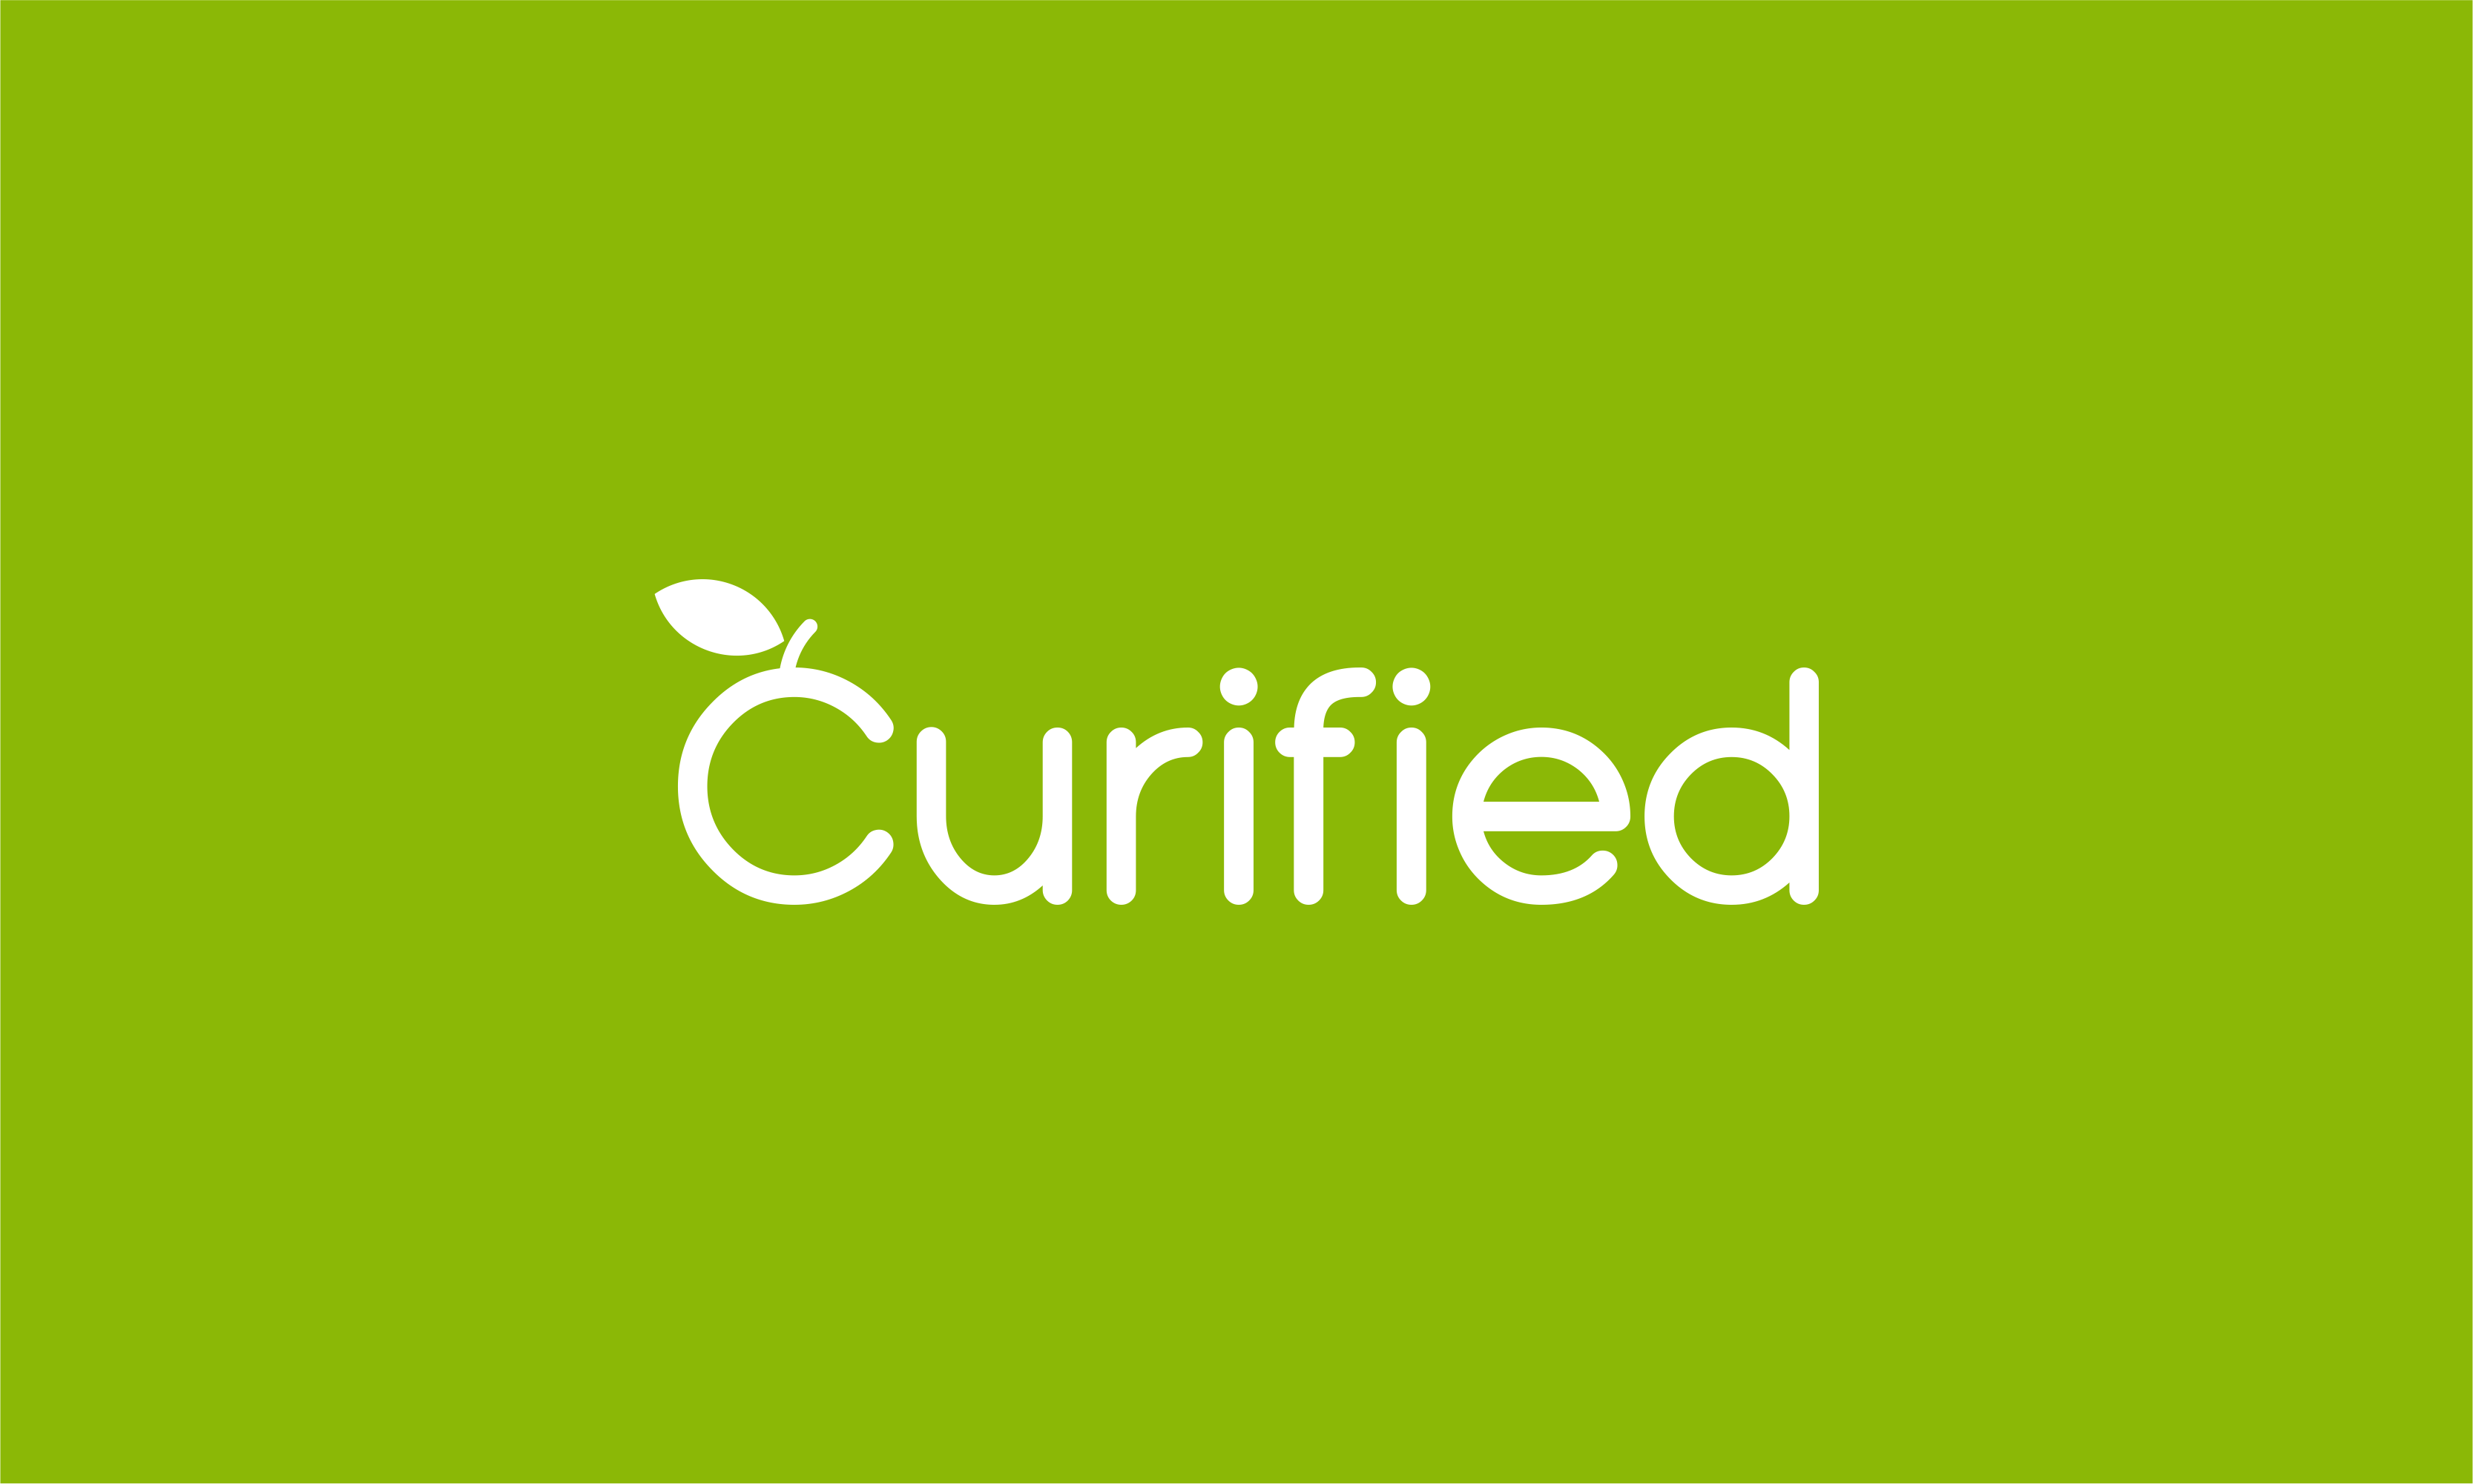 Curified - Possible domain name for sale